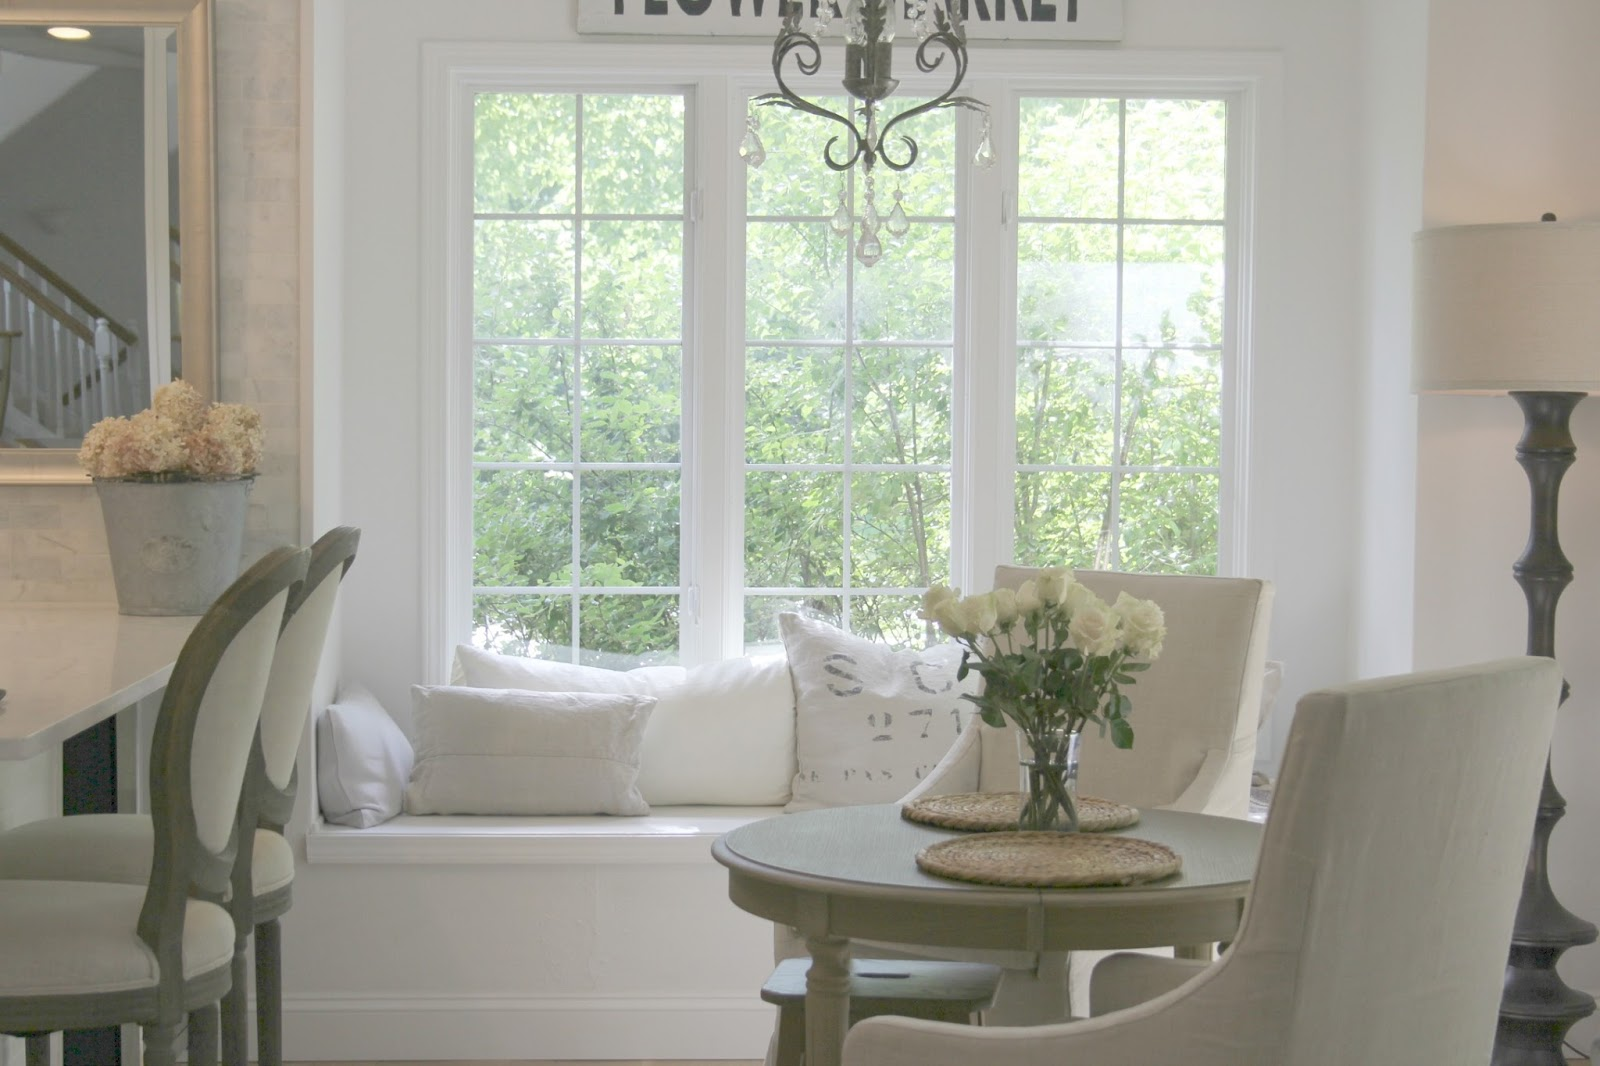 Window seat with linen pillows in European country inspired serene kitchen. Come see more of my home in Hello Lovely House Tour in July. #hellolovelystudio #timeless #tranquil #interiordesign #europeancountry #europeanfarmhouse #simpledecor #serenedecor